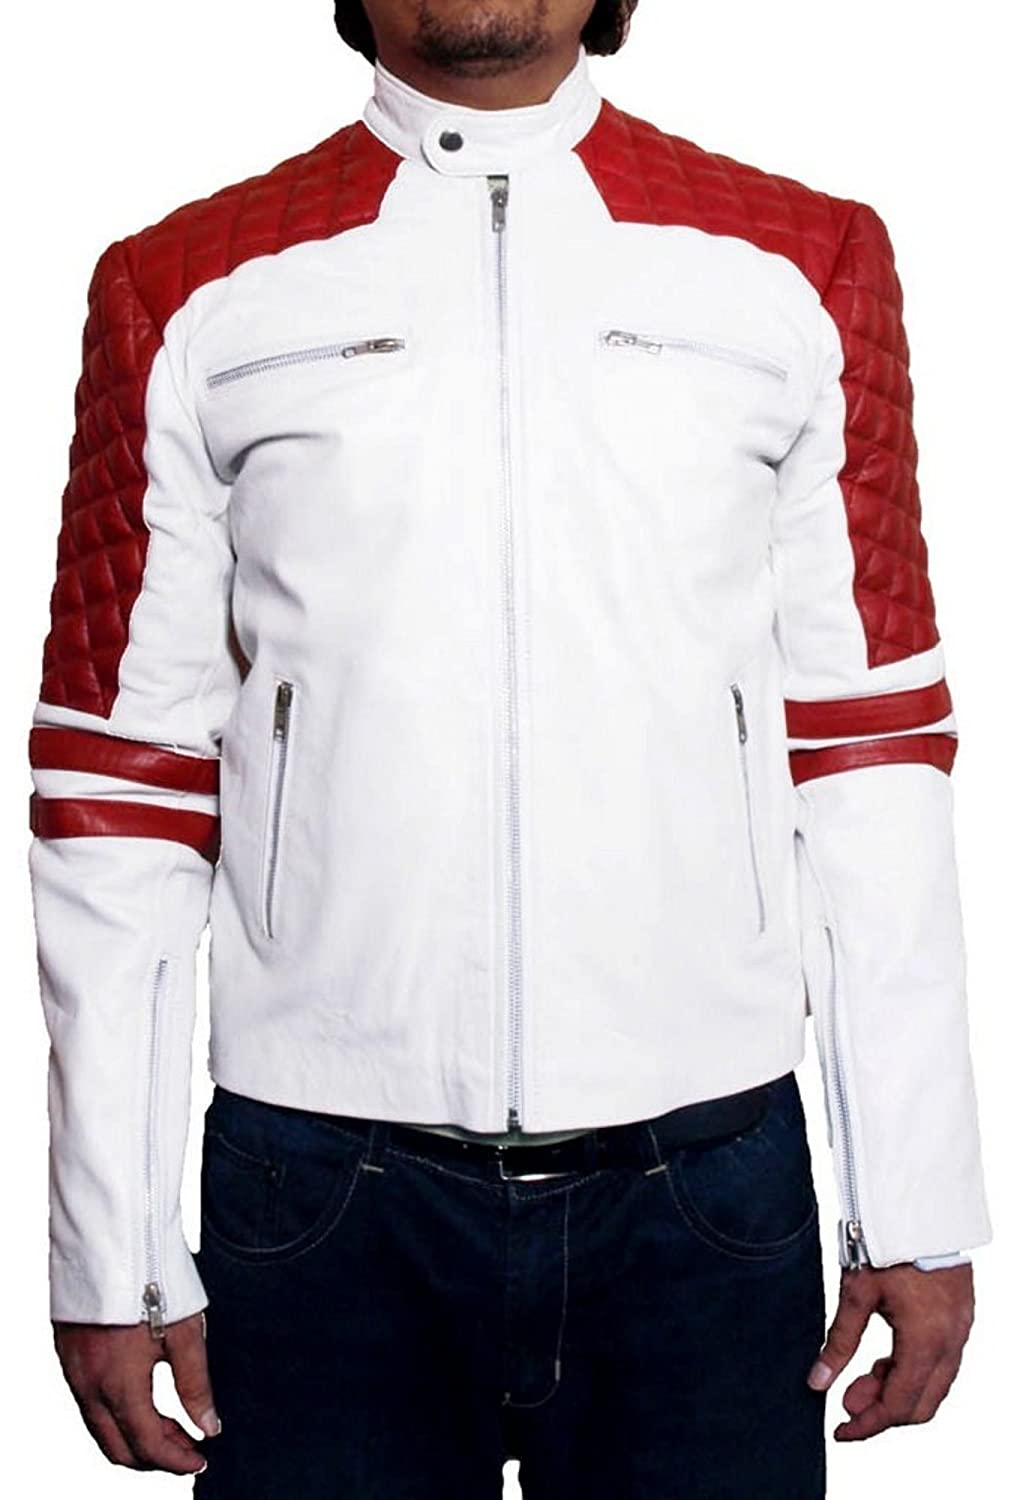 Men's Crazy Sheep White Leather Jacket